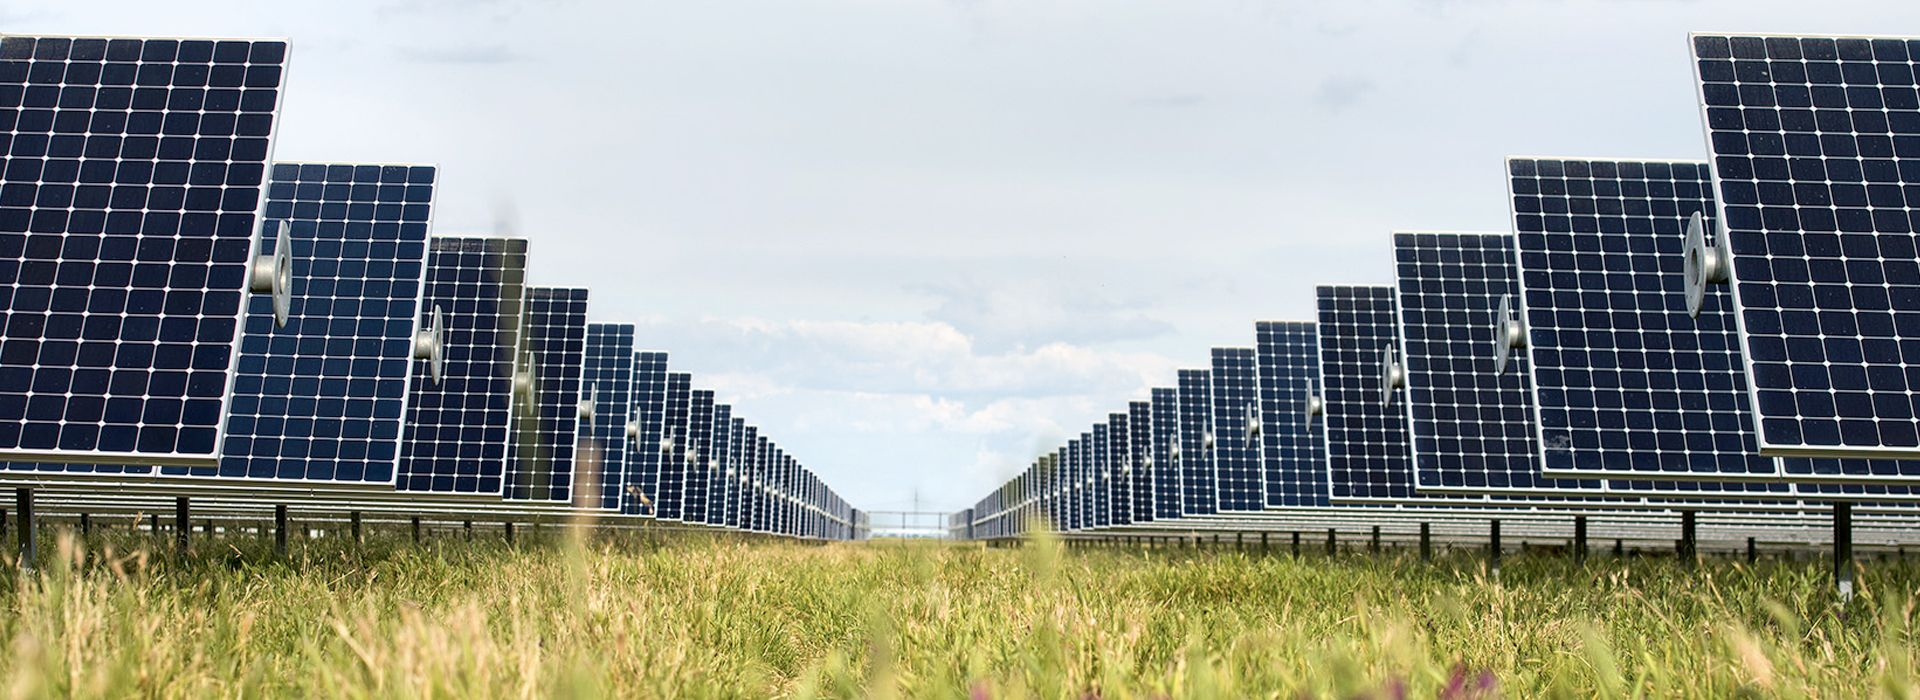 ground mount solar panels in a green field